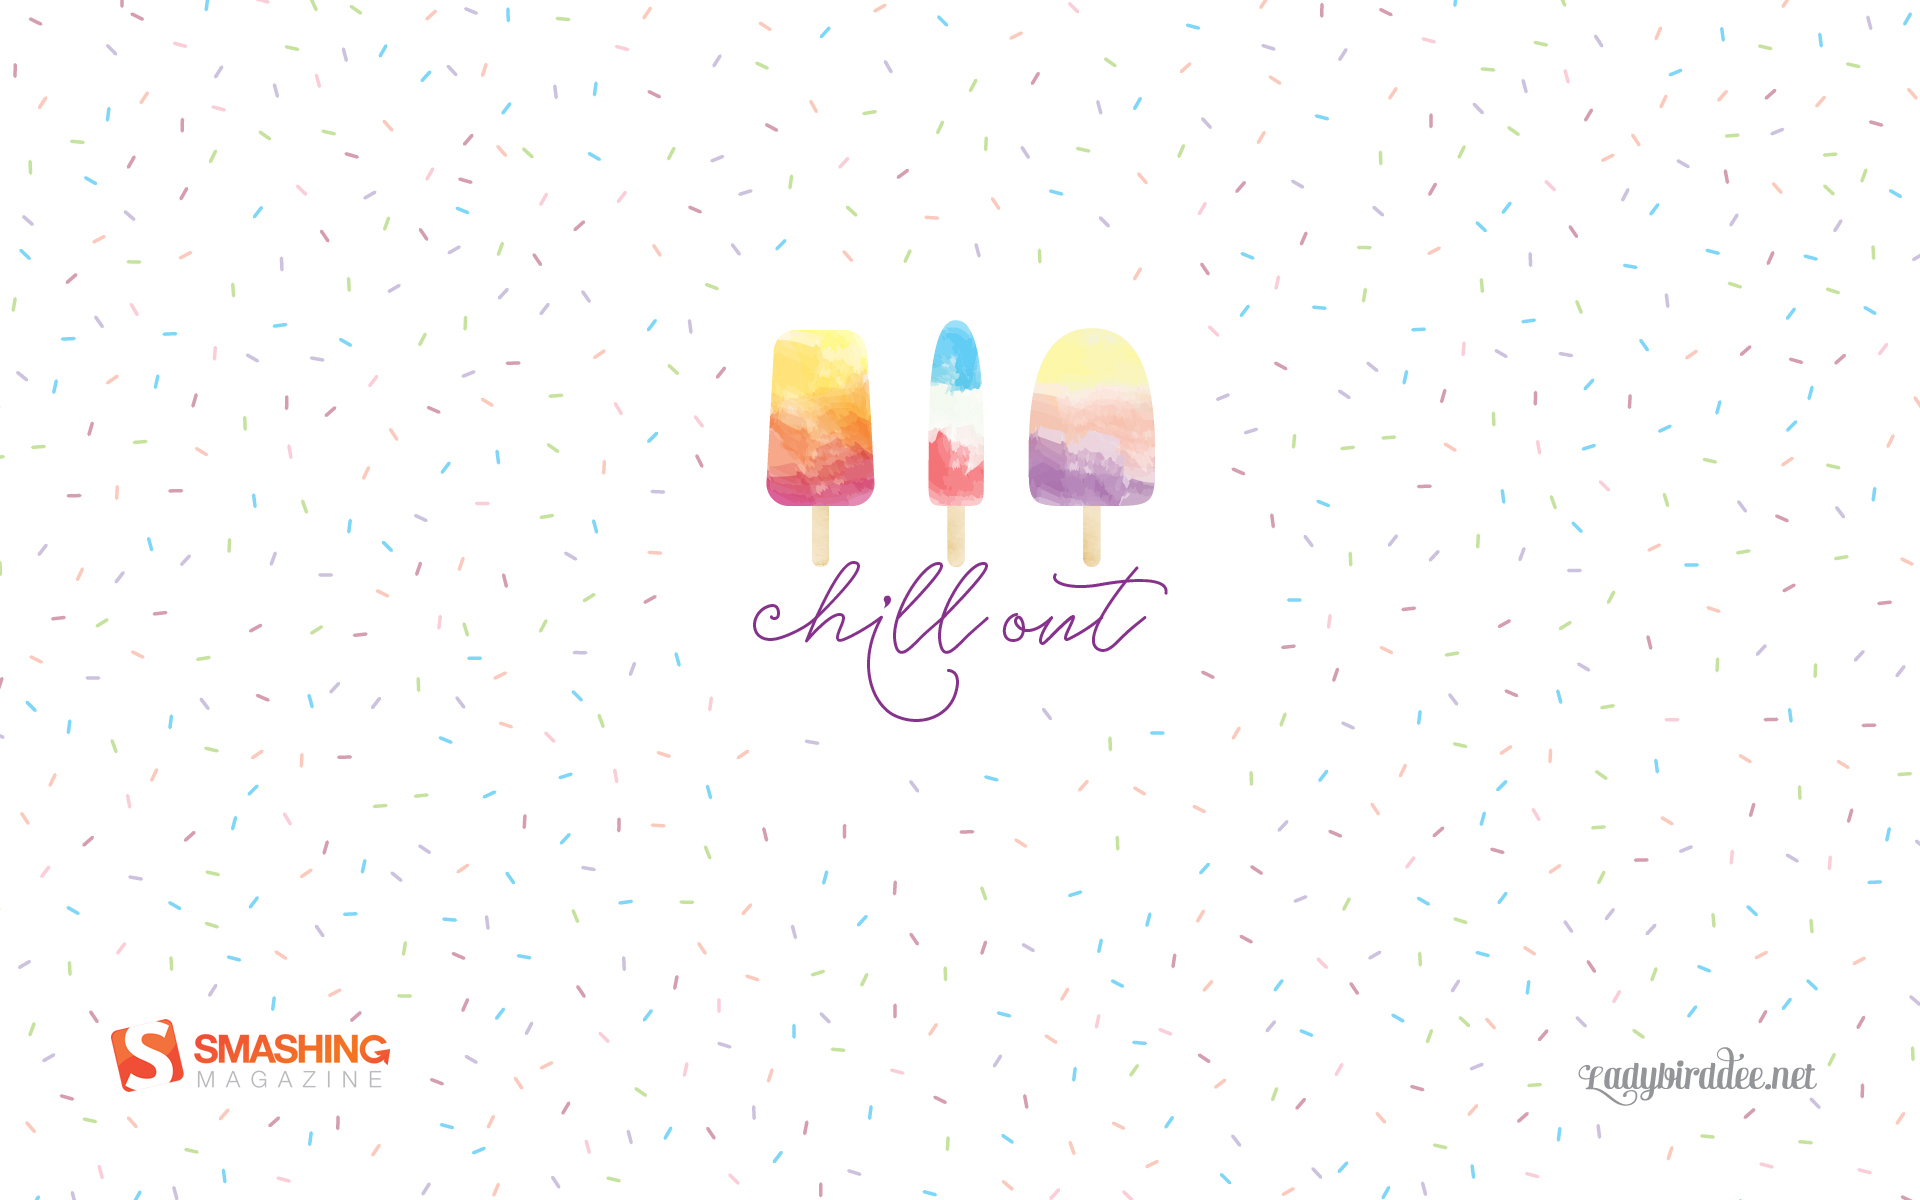 Chill Out Summer Wallpaper for Desktop